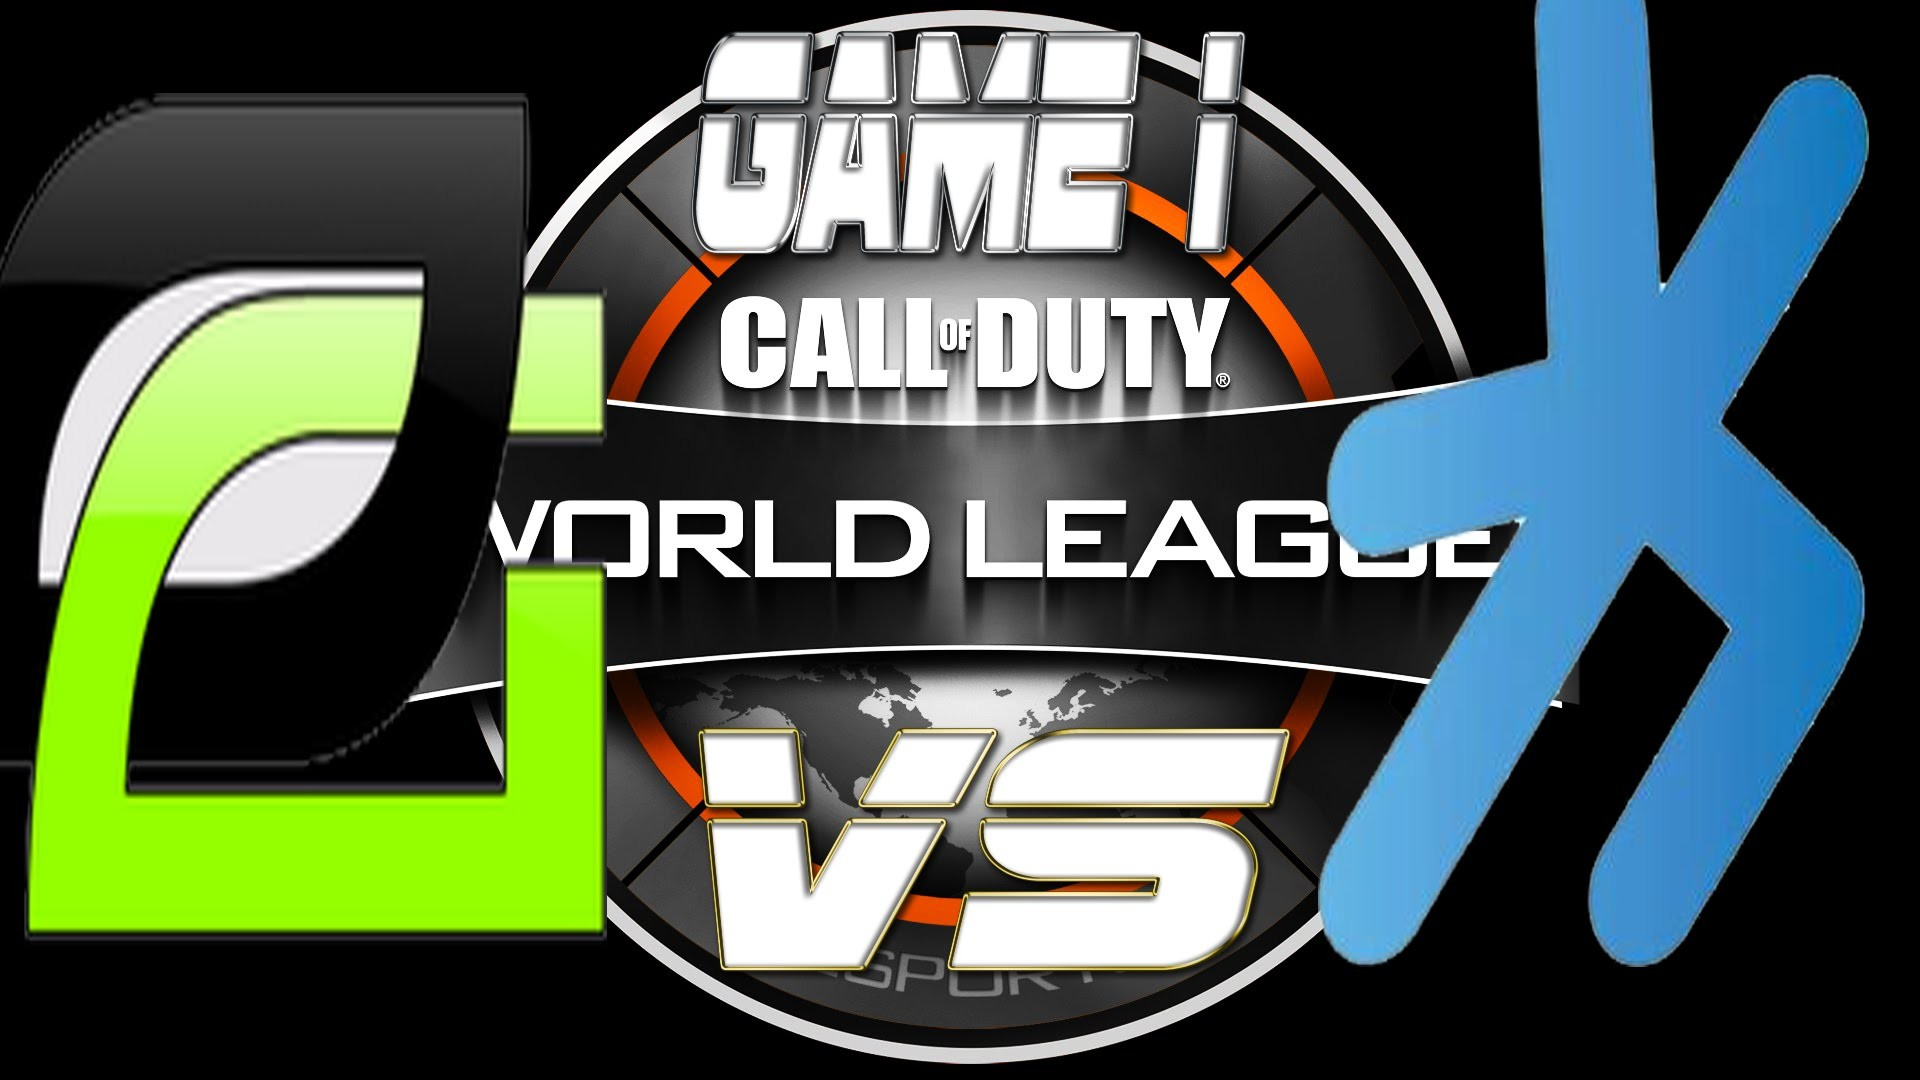 BLACK OPS 3 CWL PRO DIVISION NA OPTIC GAMING VS H2k ESPORTS GAME 1 HARPOINT  – YouTube